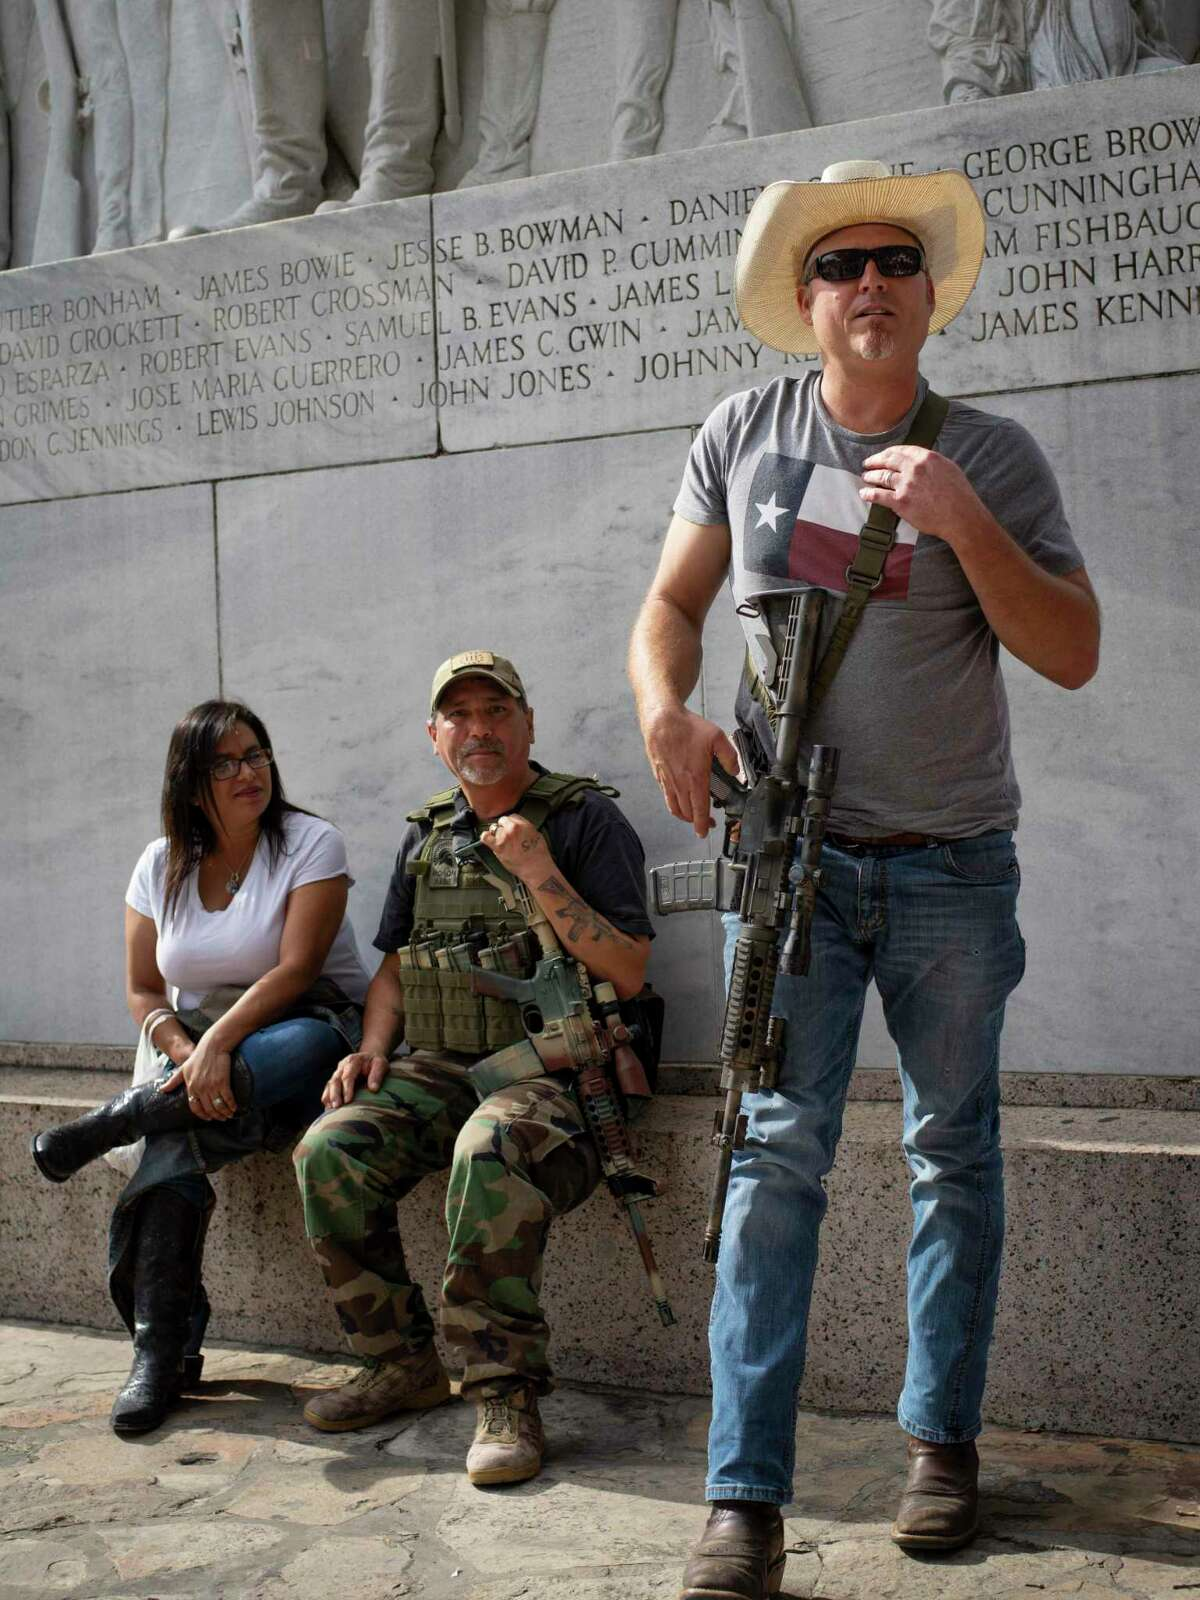 """Corey Harris, right, and Carlos Soliz, center, participate in an occupation of the Alamo Cenotaph carrying rifles in an attempt to stop to the city of San Antonio from moving the historical monument on Friday, December 27, 2019. Members of This is Texas Freedom Force are opposing the planned moving of the Alamo Cenotaph by the city of San Antonio. ?'We?•re here today to occupy around the Cenotaph to stop any plans moving forward, trying to disassemble it and move it,?"""" Brandon Burkhart, president of This is Texas Freedom Force (TITFF) said. TITFF is asking that Texas citizens be allowed to vote on the removal of the monument to the Battle of the Alamo and to those soldiers who died there, citing that the cost of movement and repair if it is damaged will cost Texas taxpayers."""